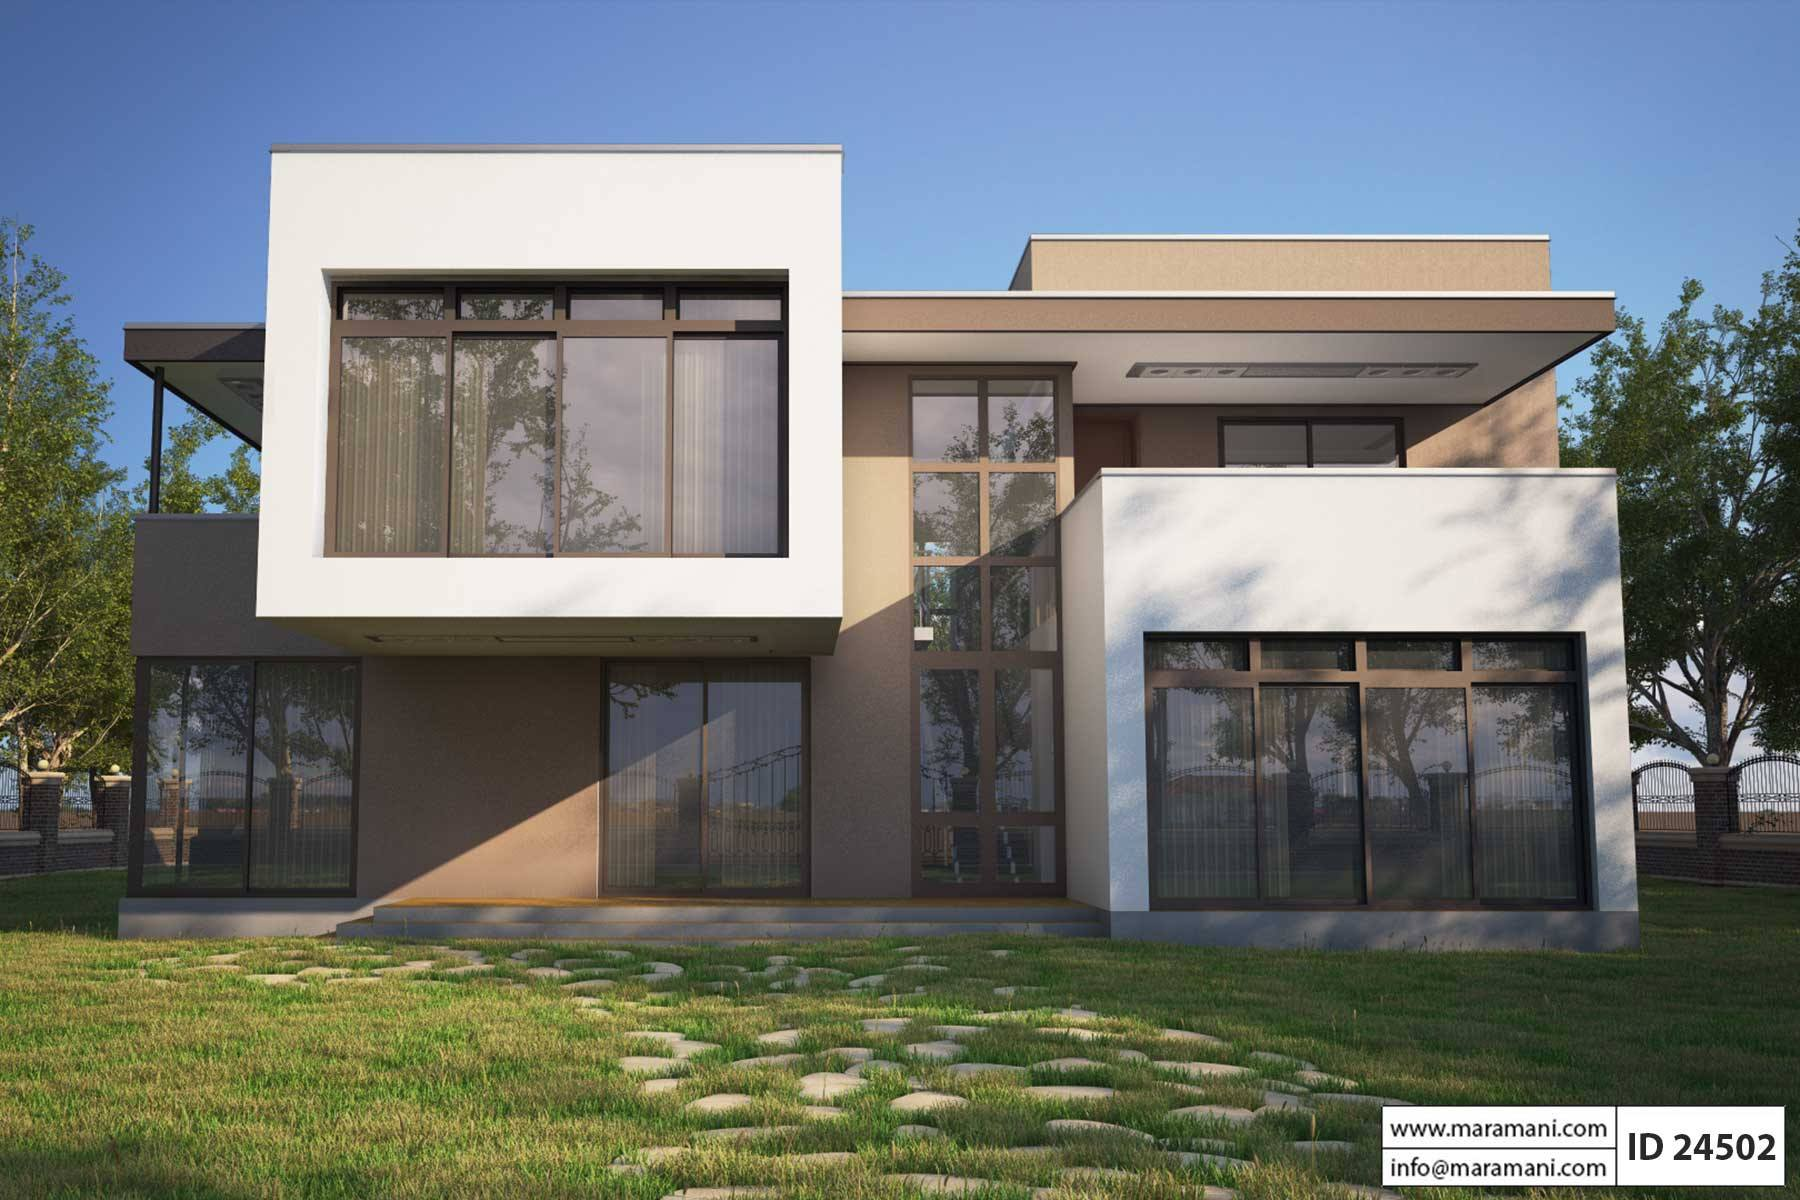 4 bedroom modern house plan id 24502 house plans maramani 4 bedroom modern house plans